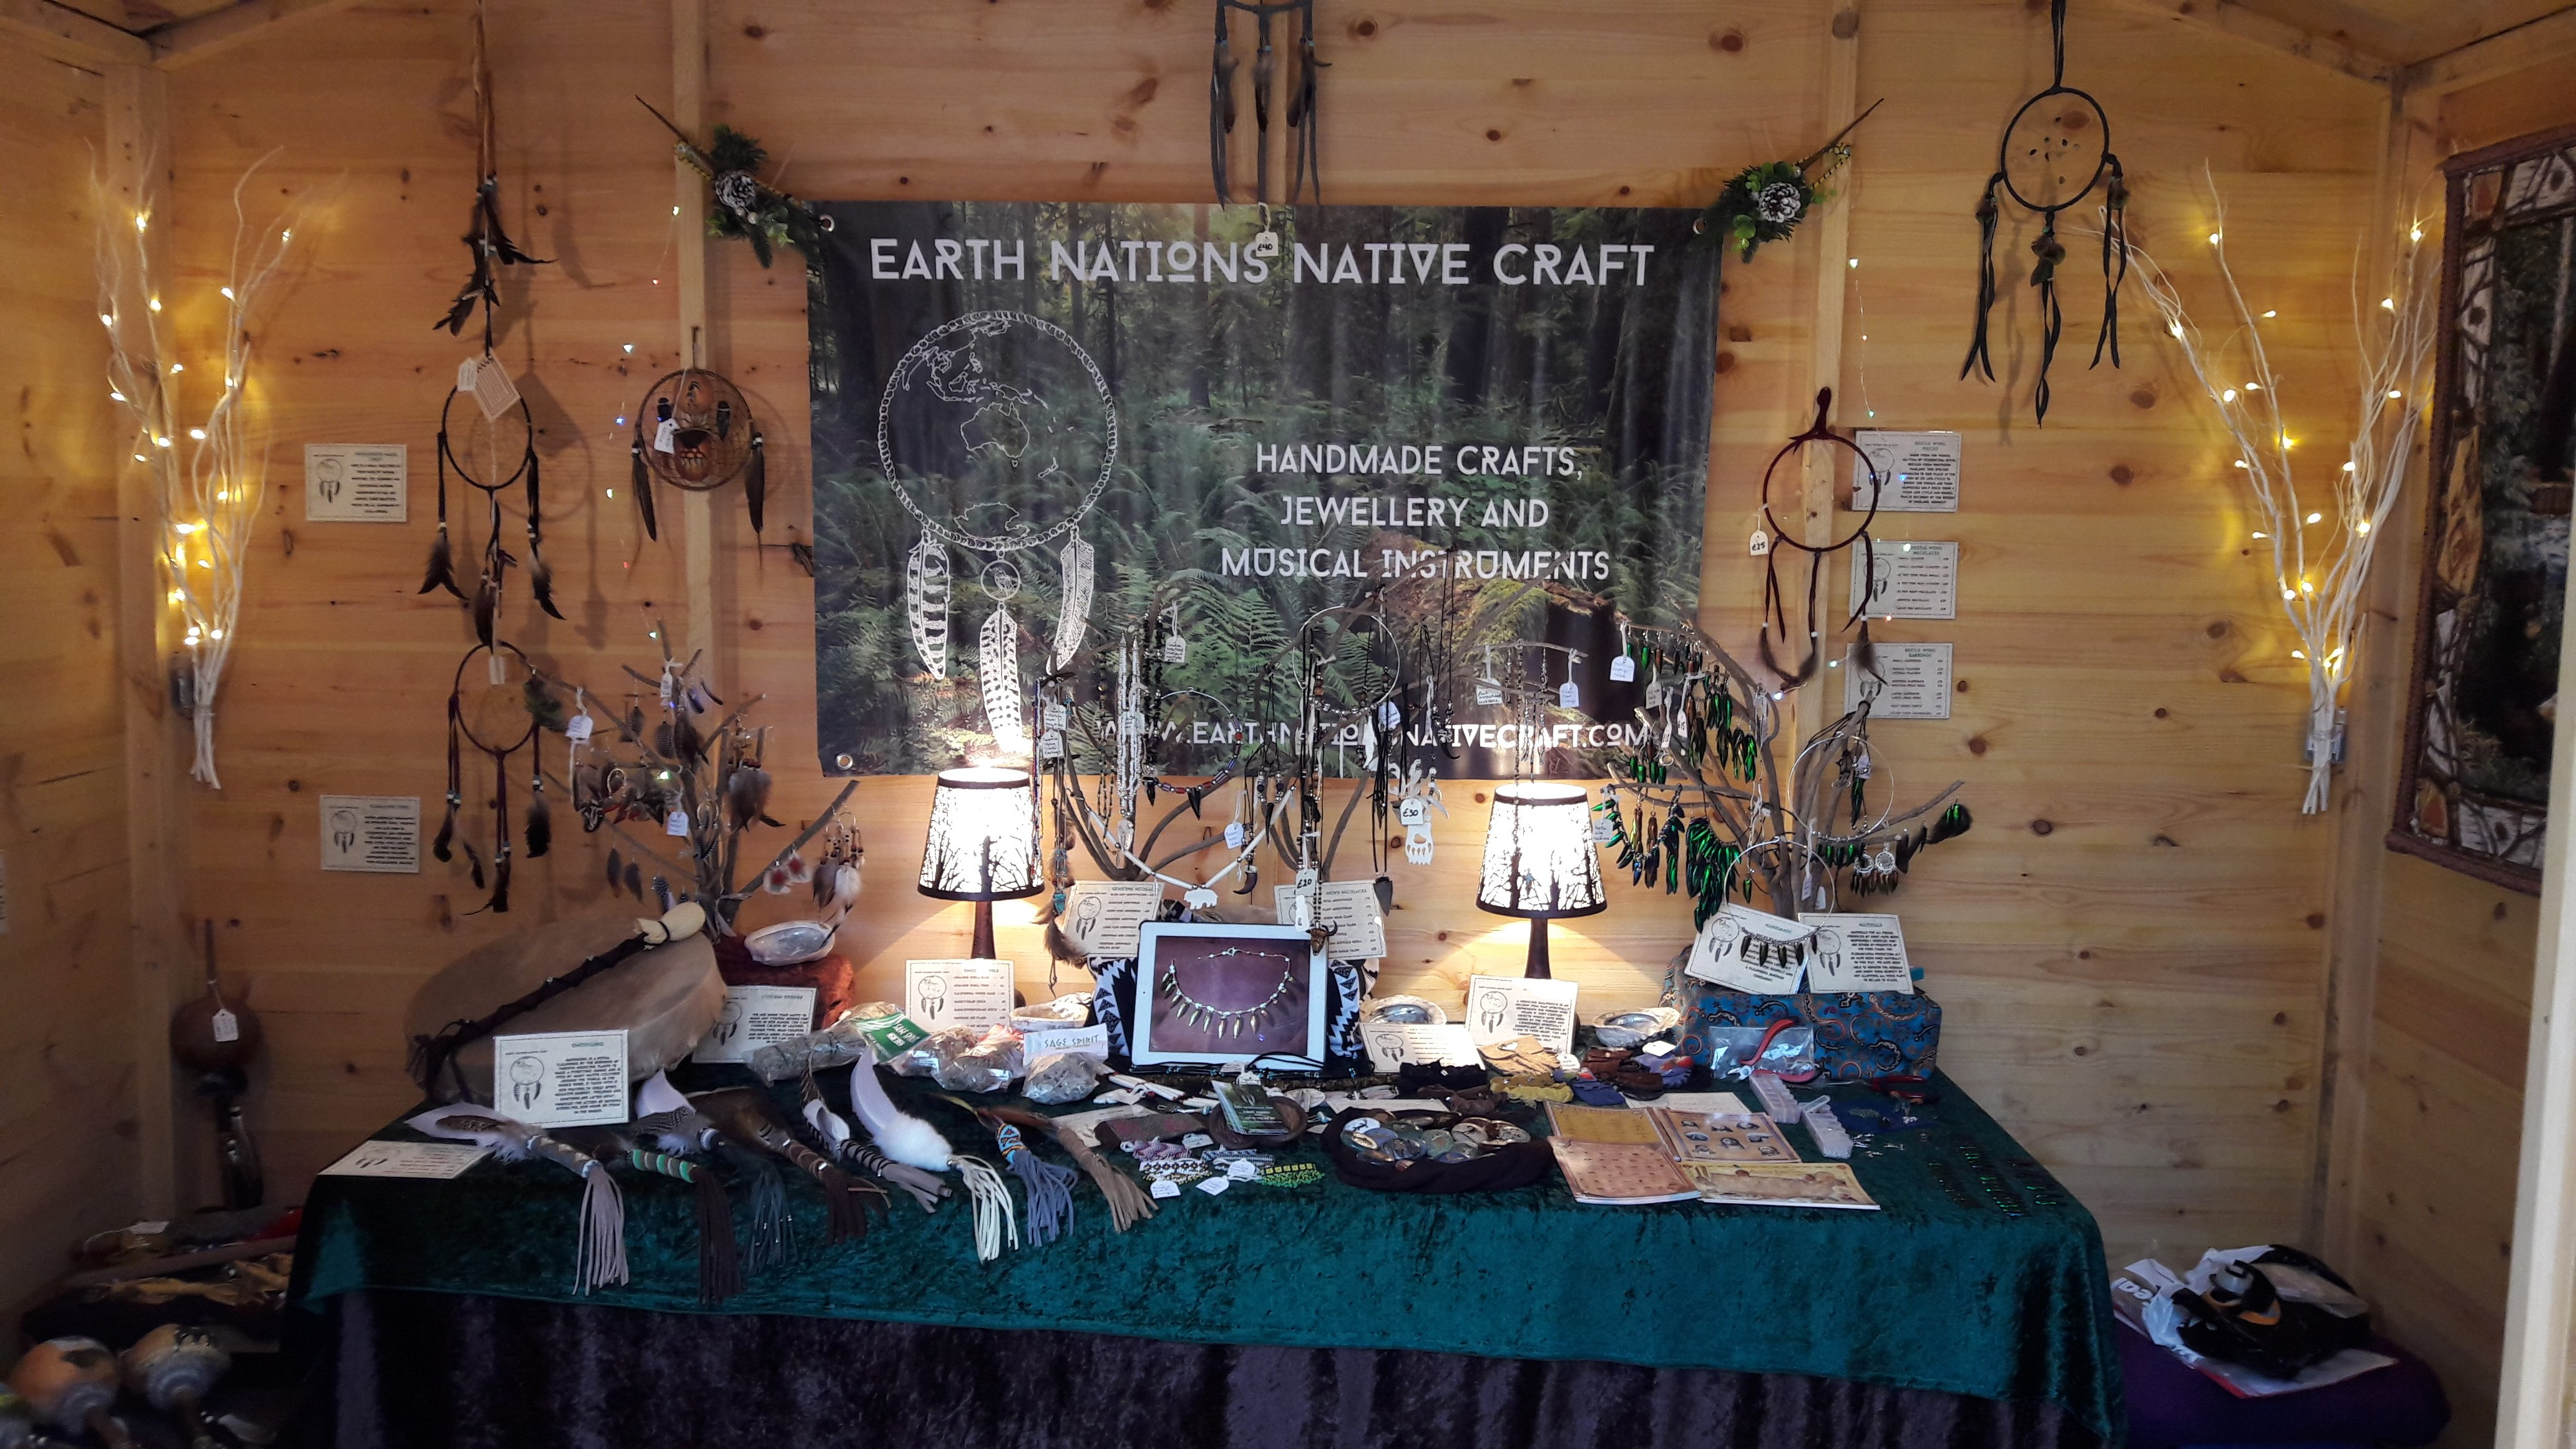 market stall craft jewellery musical instruments